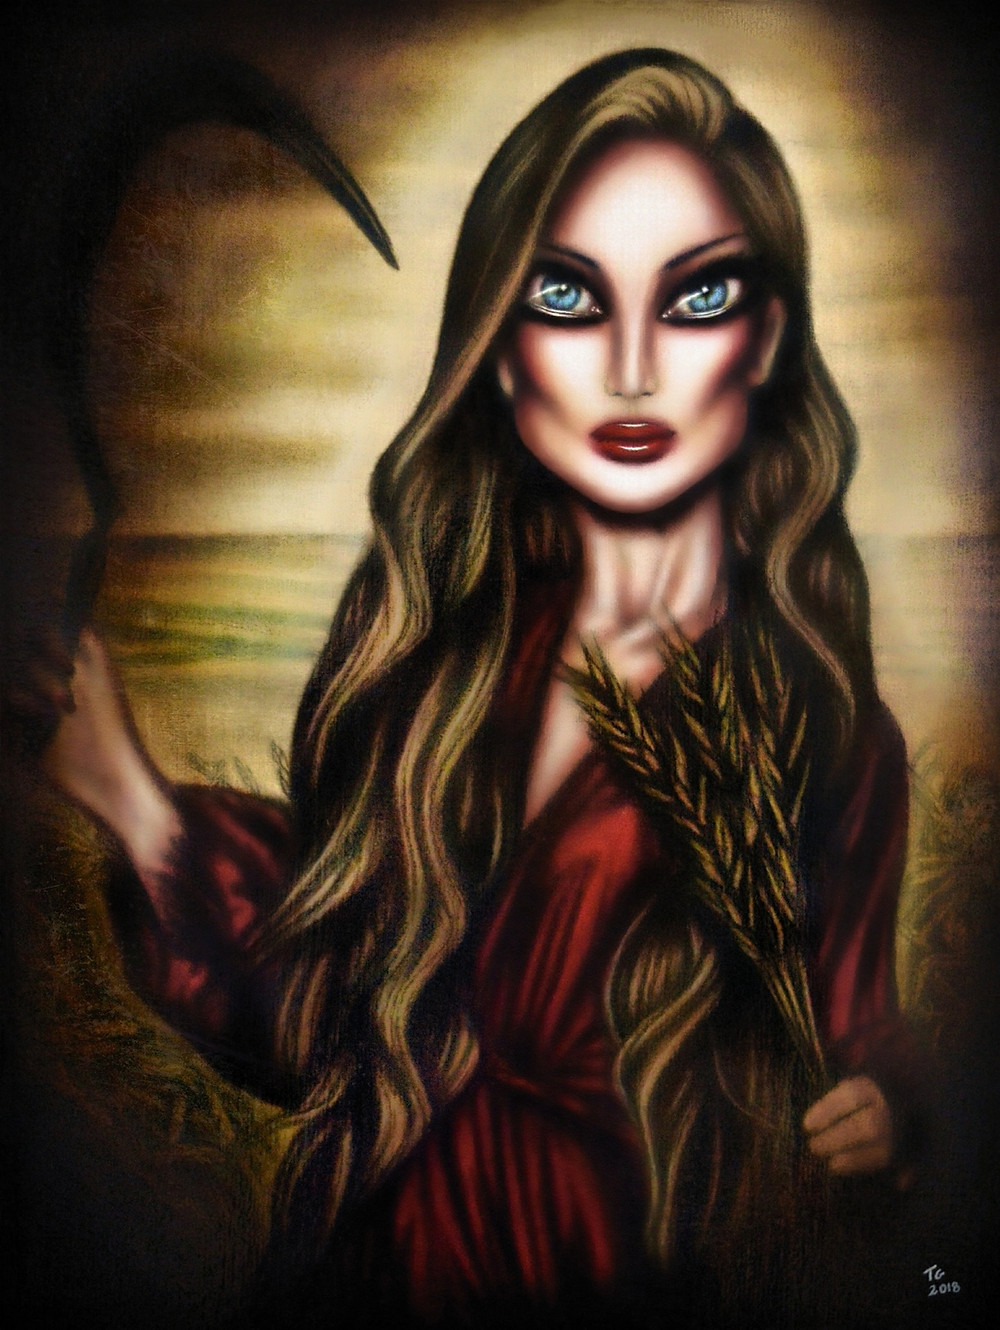 painting biblical ruth gathering wheat in a field with a red robe by tiago azevedo a lowbrow pop surrealism artist